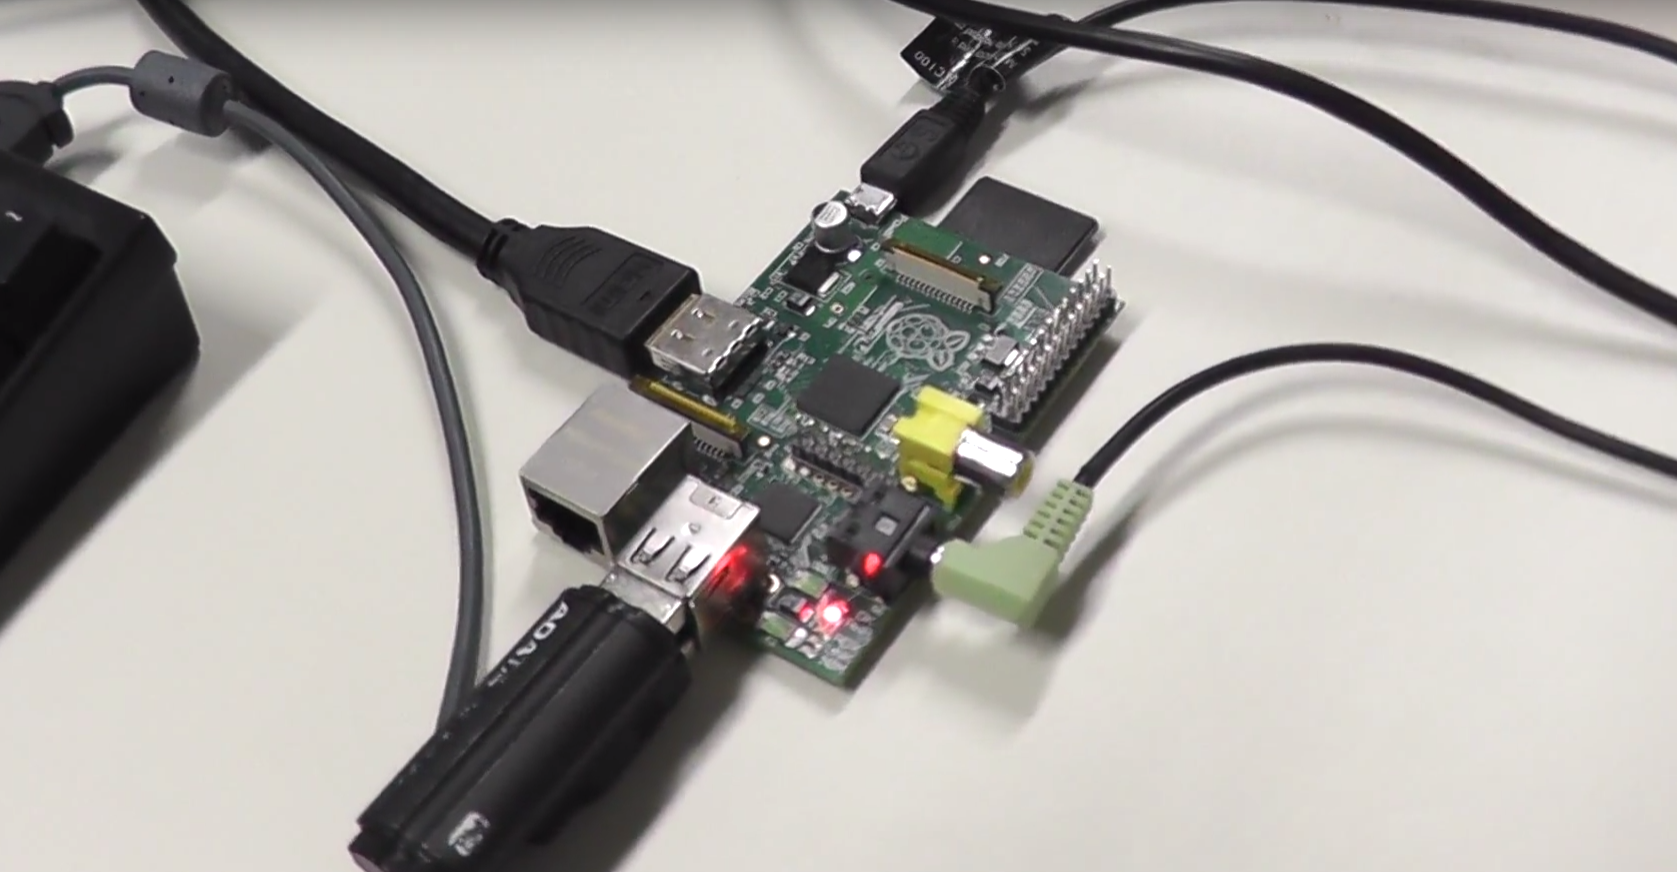 How to get 1080p videos running on my Raspberry Pi - Brian Hensley